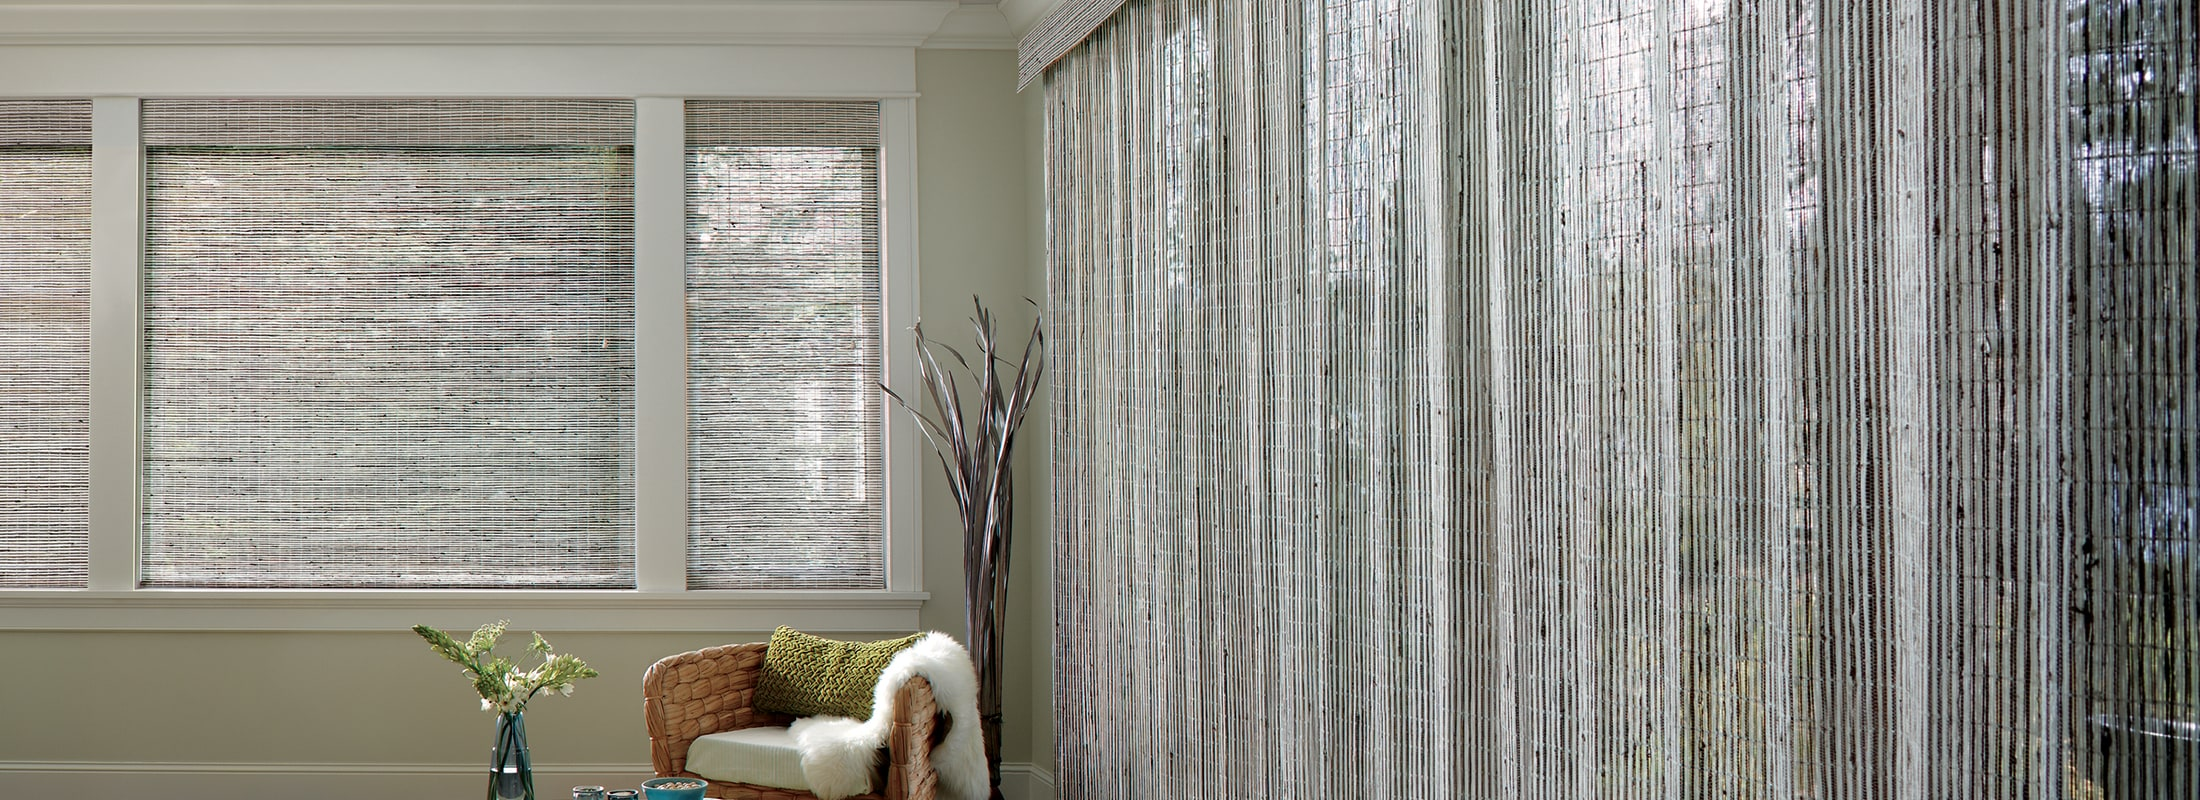 Bamboo blinds in Cambria Pebble White - Provenance